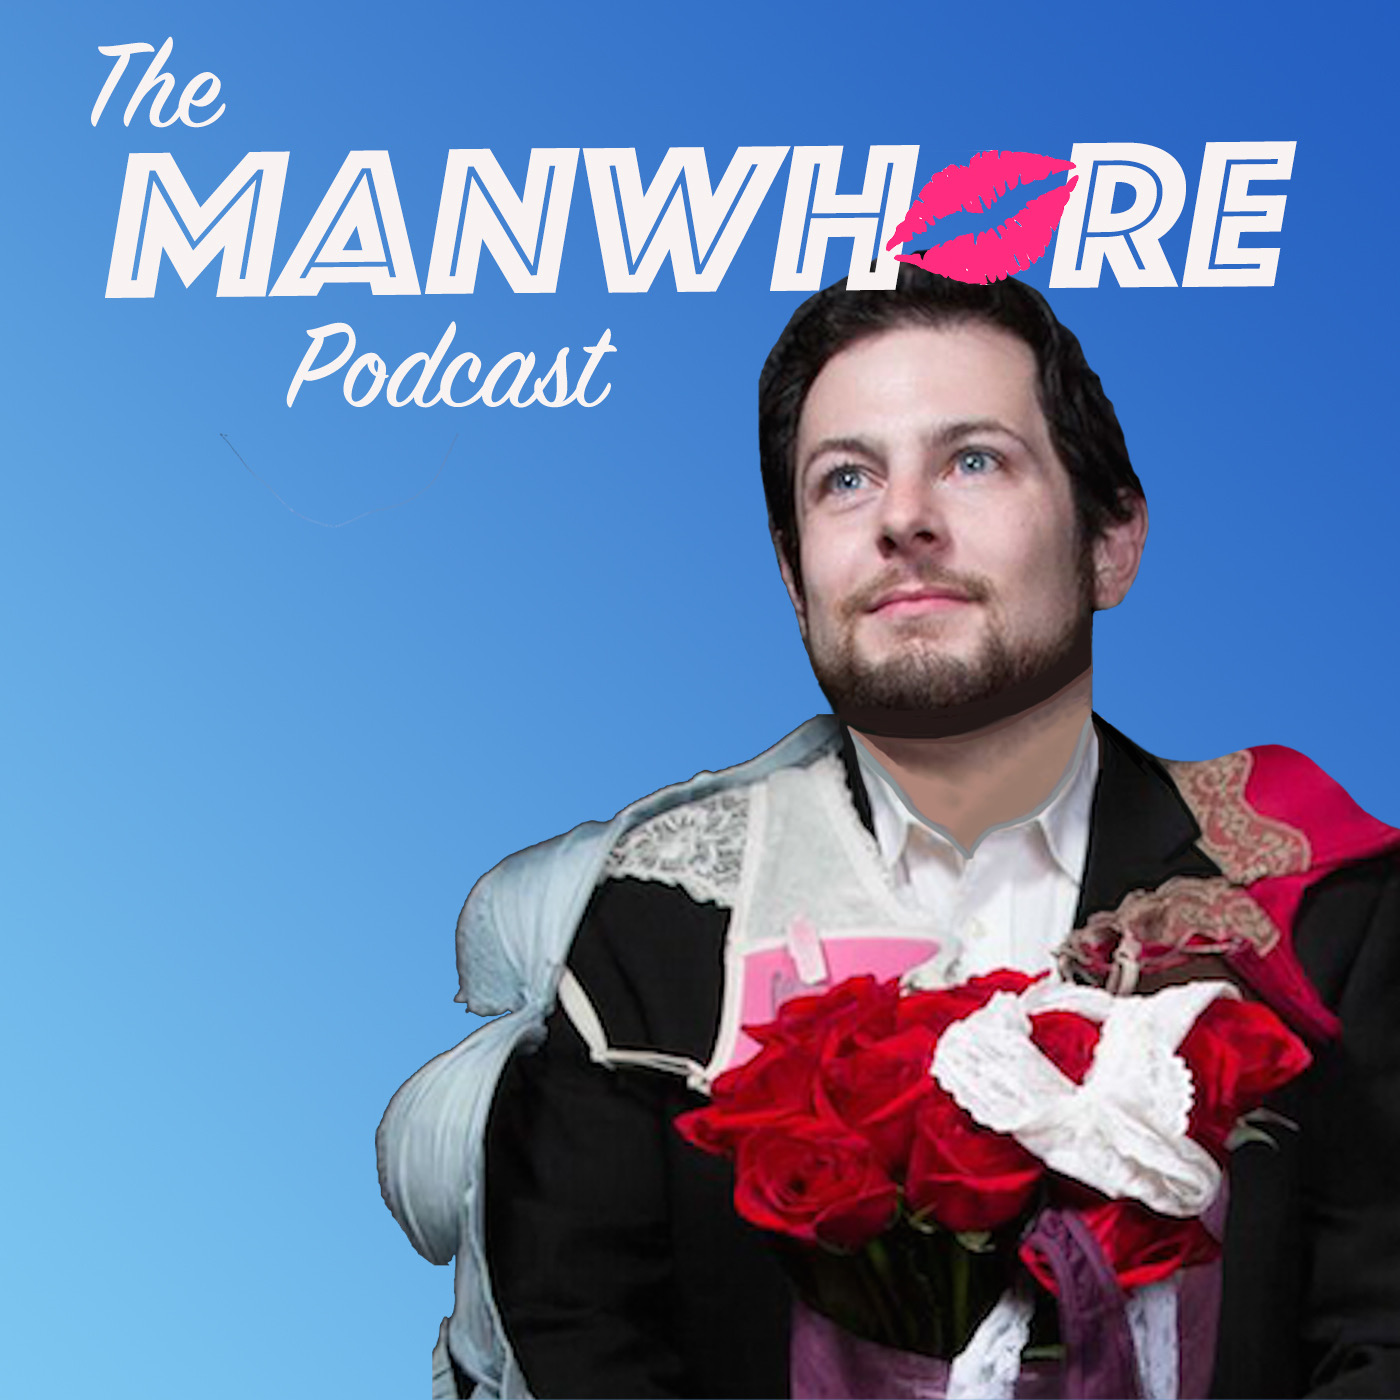 The Manwhore Podcast: A Sex-Positive Quest - Ep. 289: Should Billy Stop F**king His Fans?